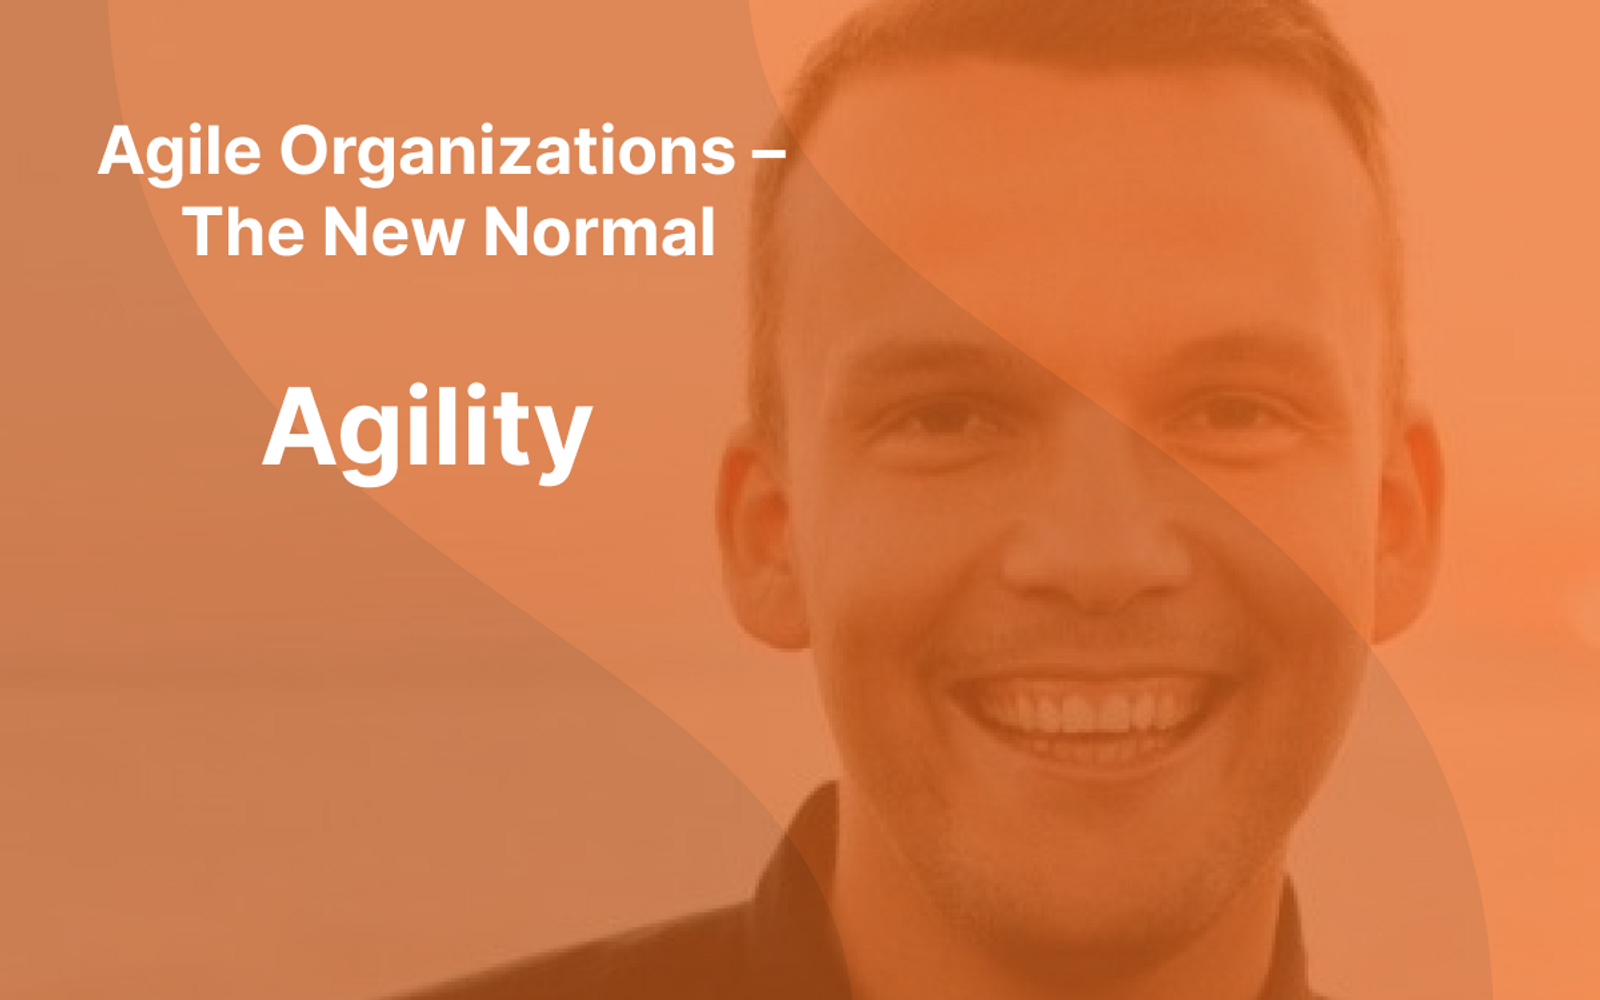 """Picture of Sindre Suphellen with orange overlay and the text """"Agile Organizations - The New Normal"""" and """"Agility"""" written in white"""